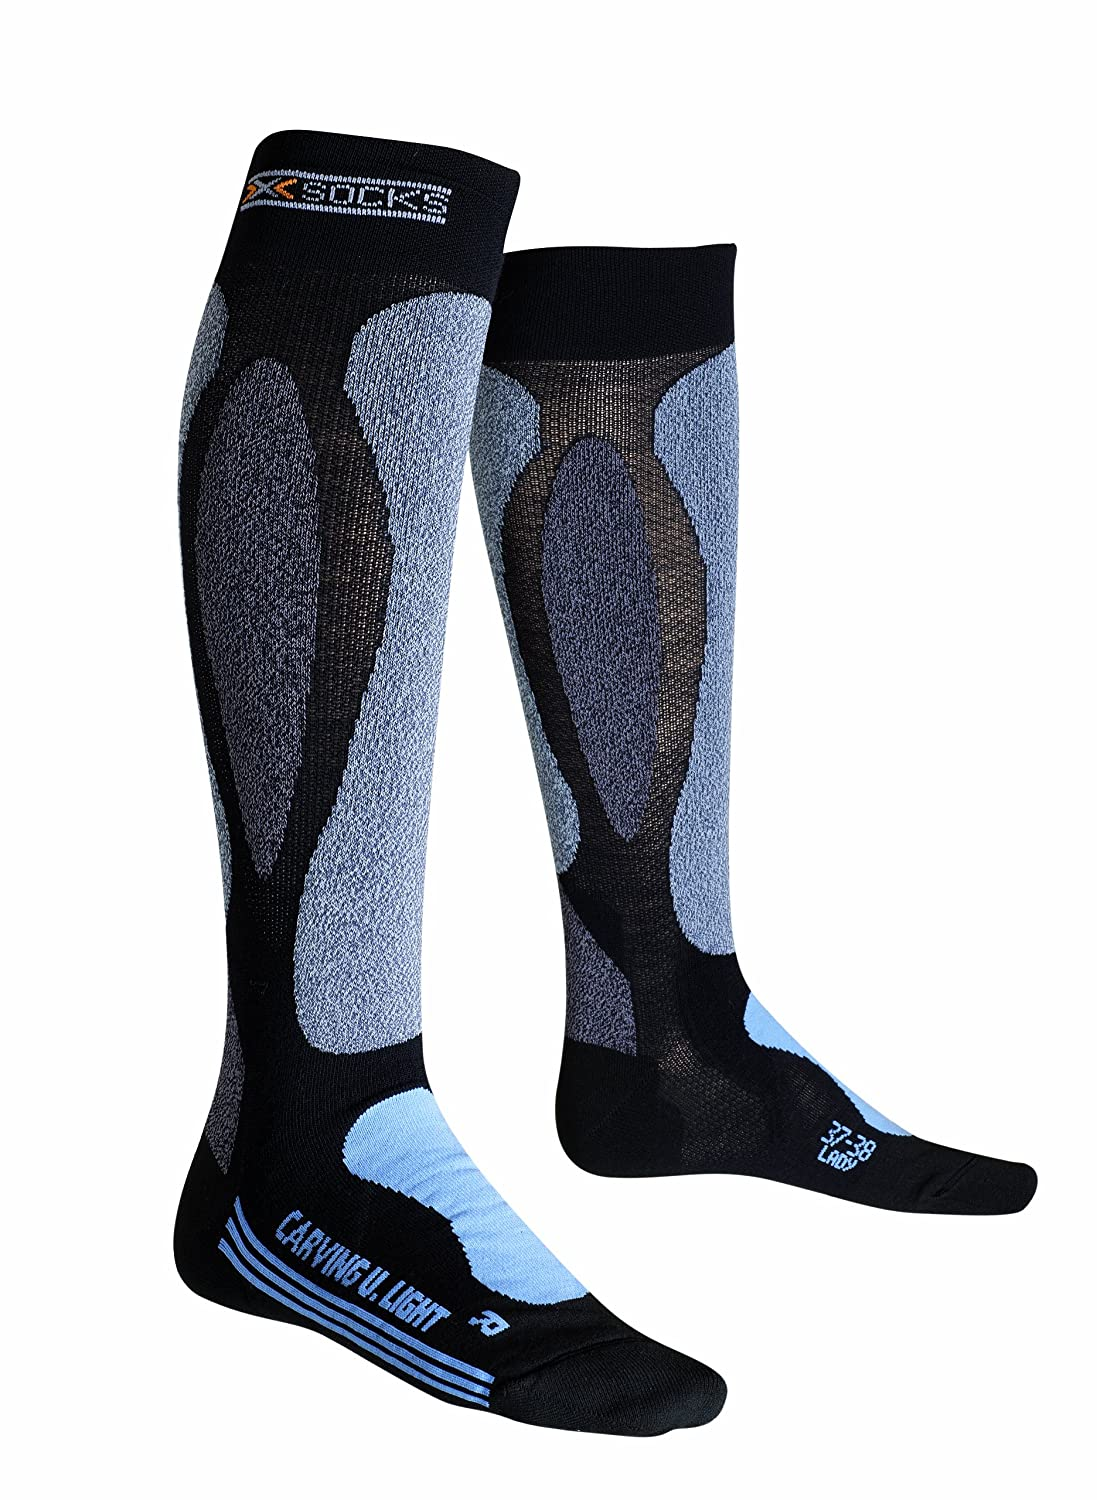 X-Socks Funktionssocken Ski Carving Ultra Light Lady